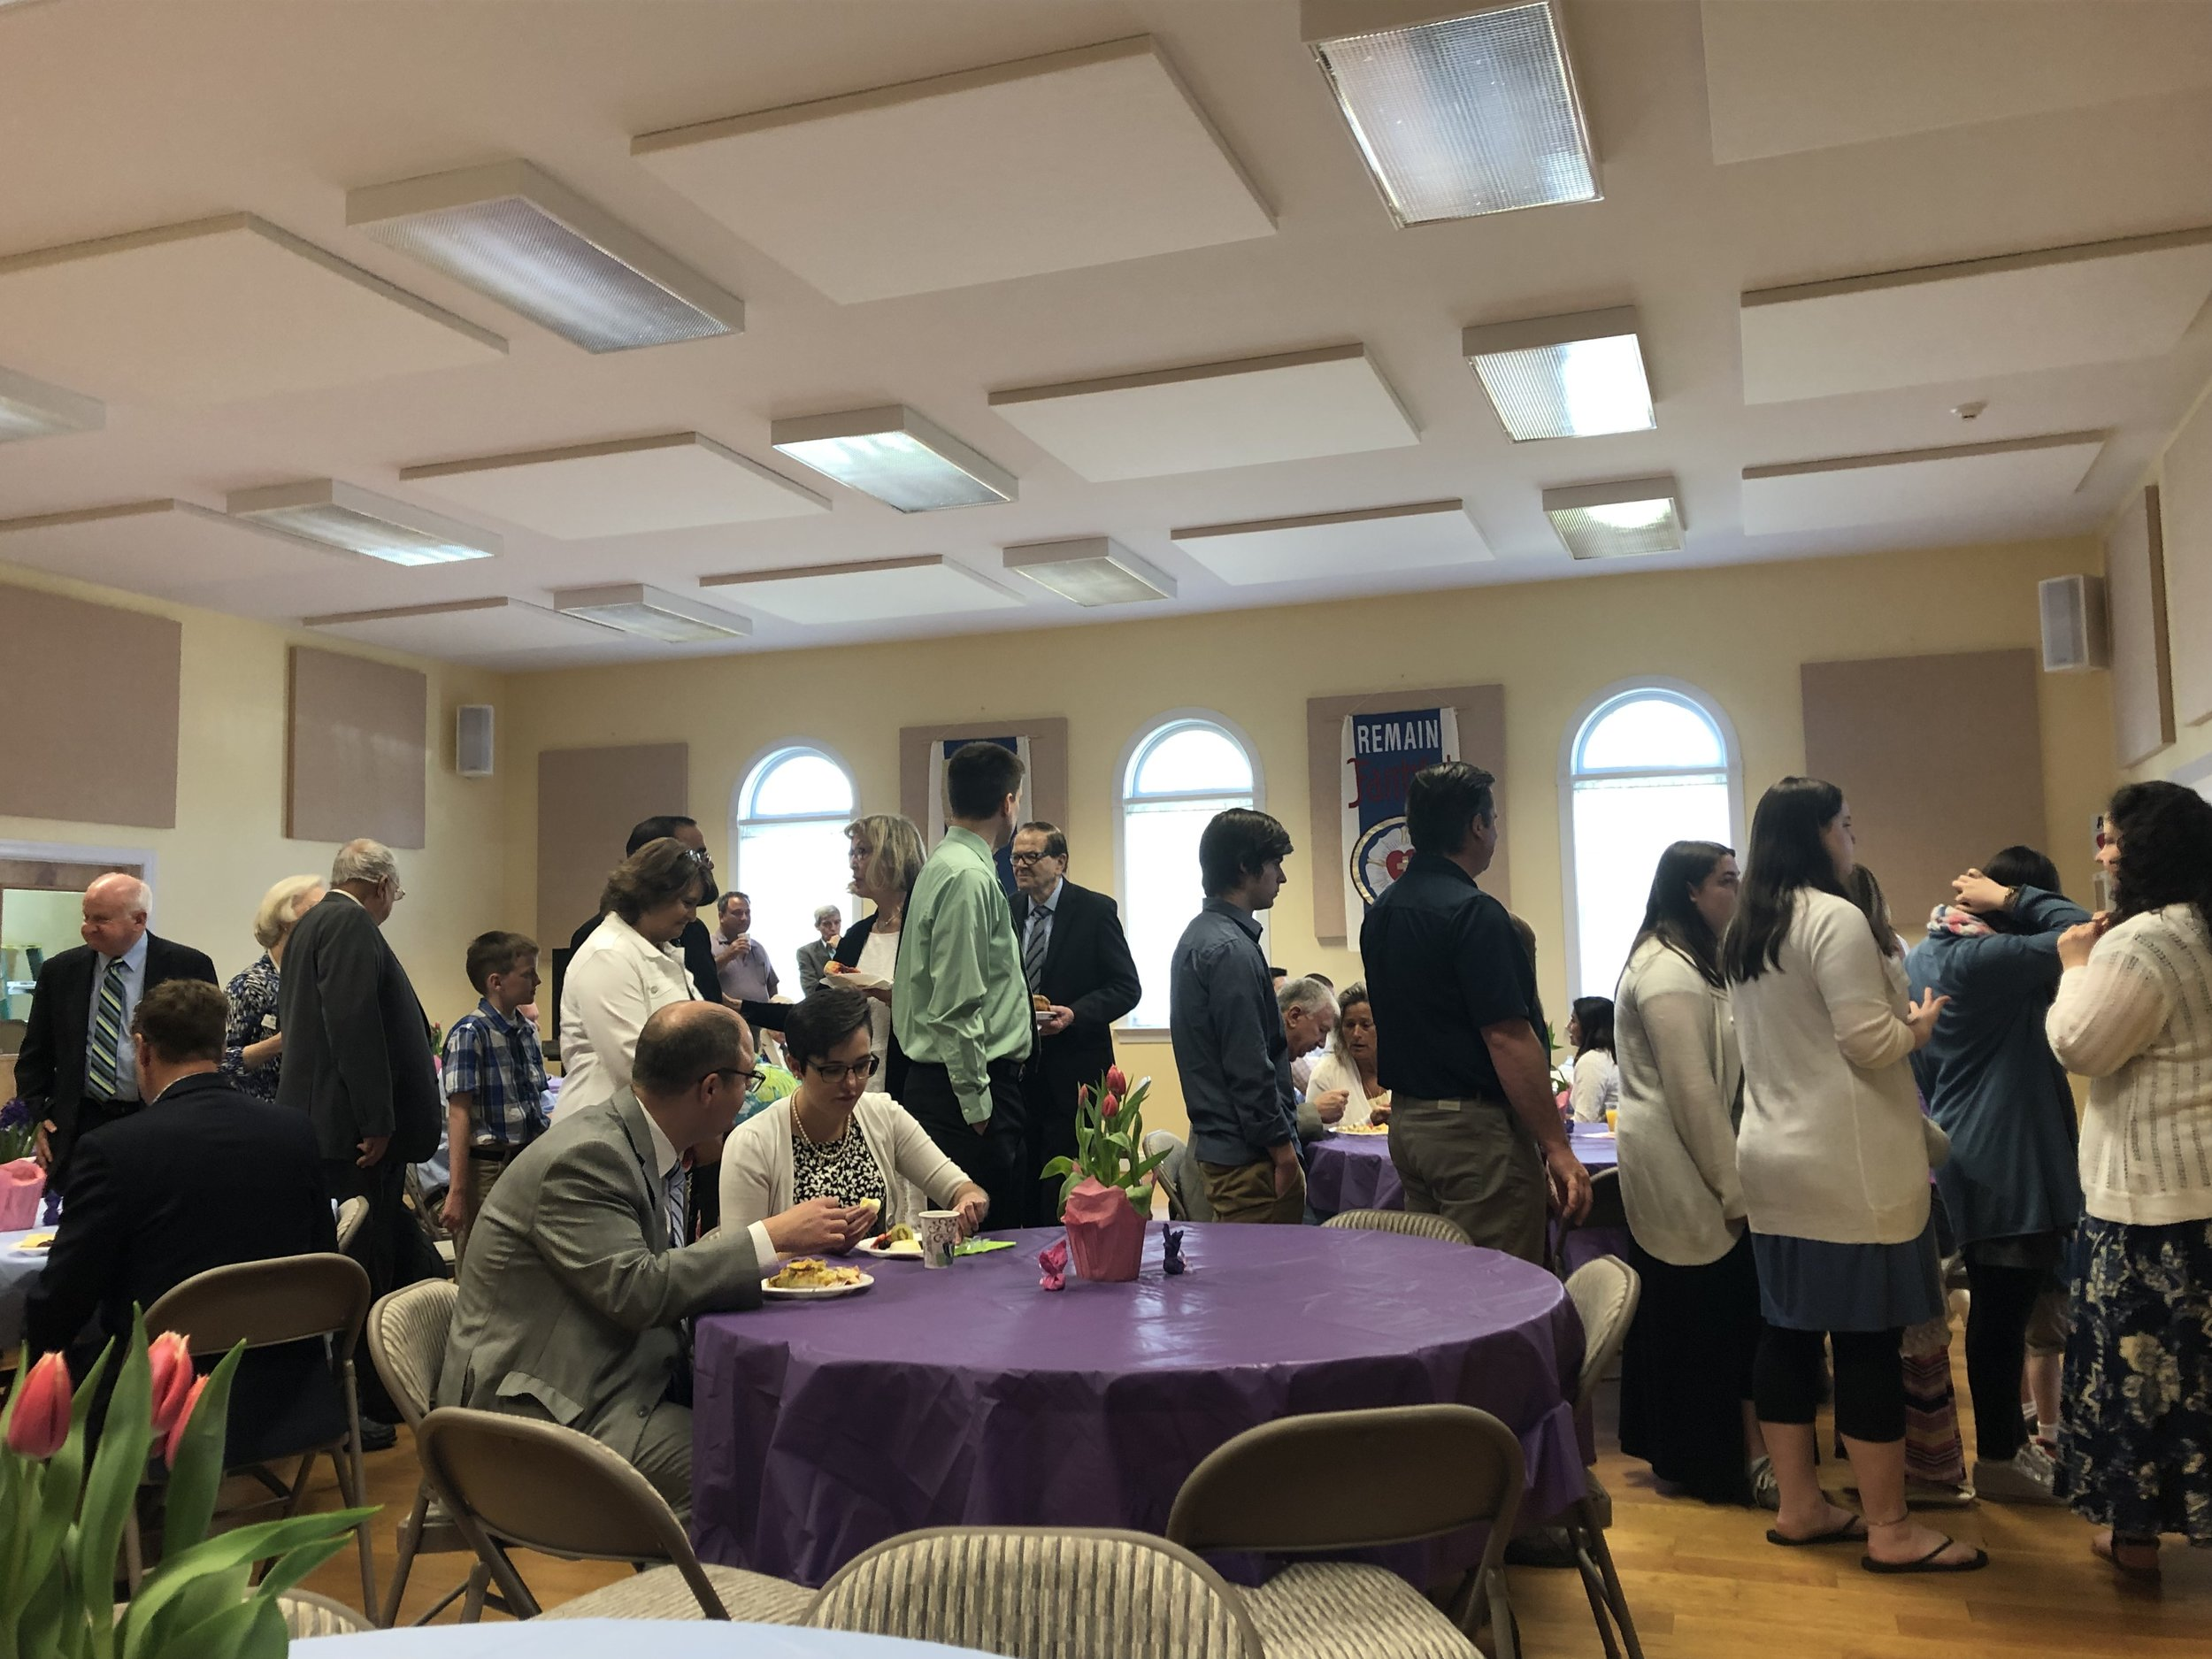 OSLC-Easter-Brunch-2019-7.JPG